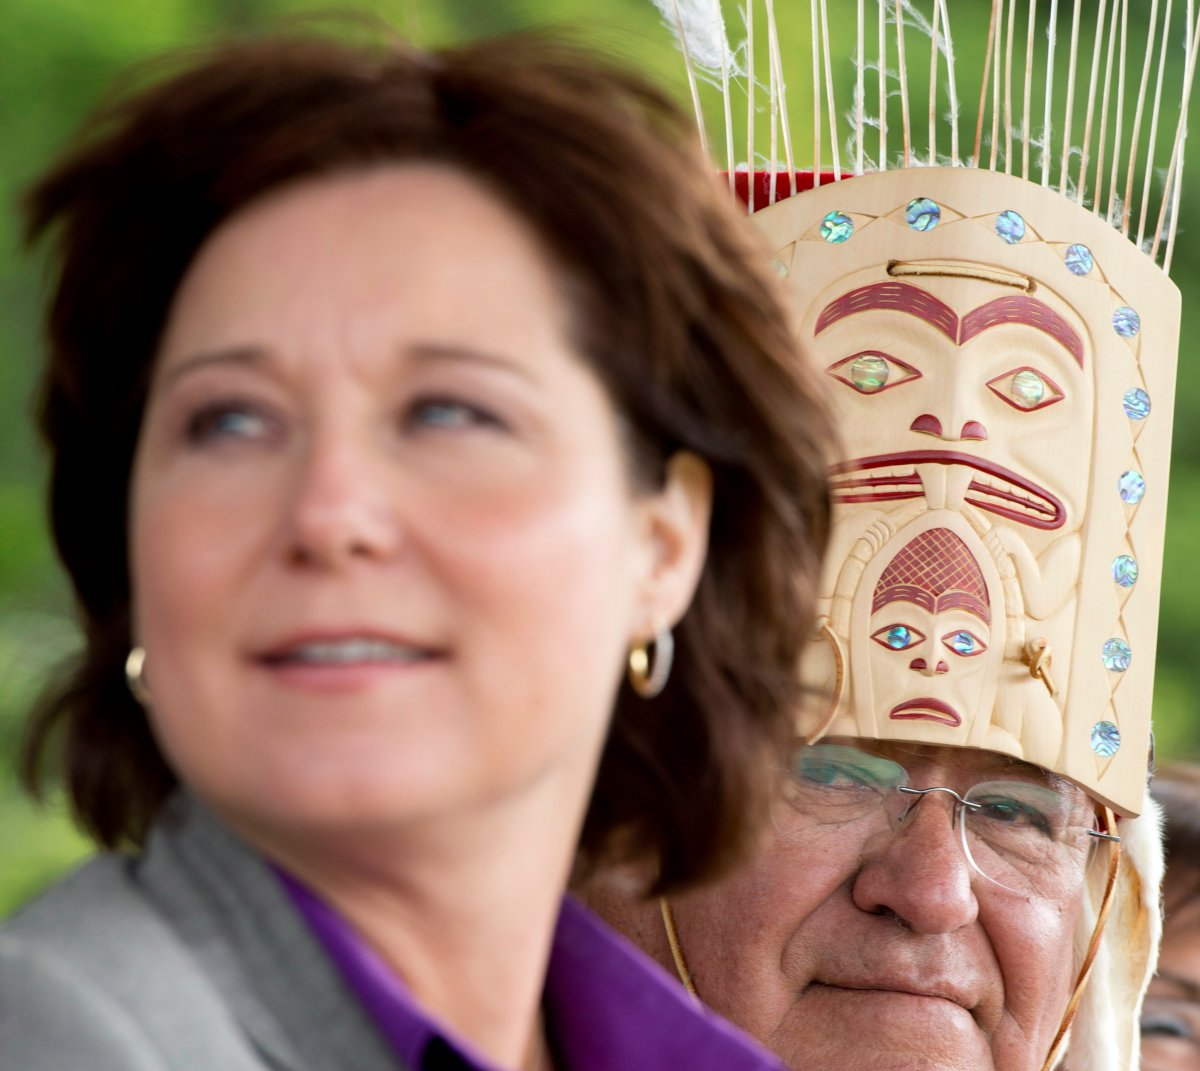 British Columbia Premier Christy Clark and Chief Sammy Robinson of the Haisla First Nation attend an event to celebrate a recent land sale to the Haisla in Kitimat, B.C., Tuesday, June 17, 2014.